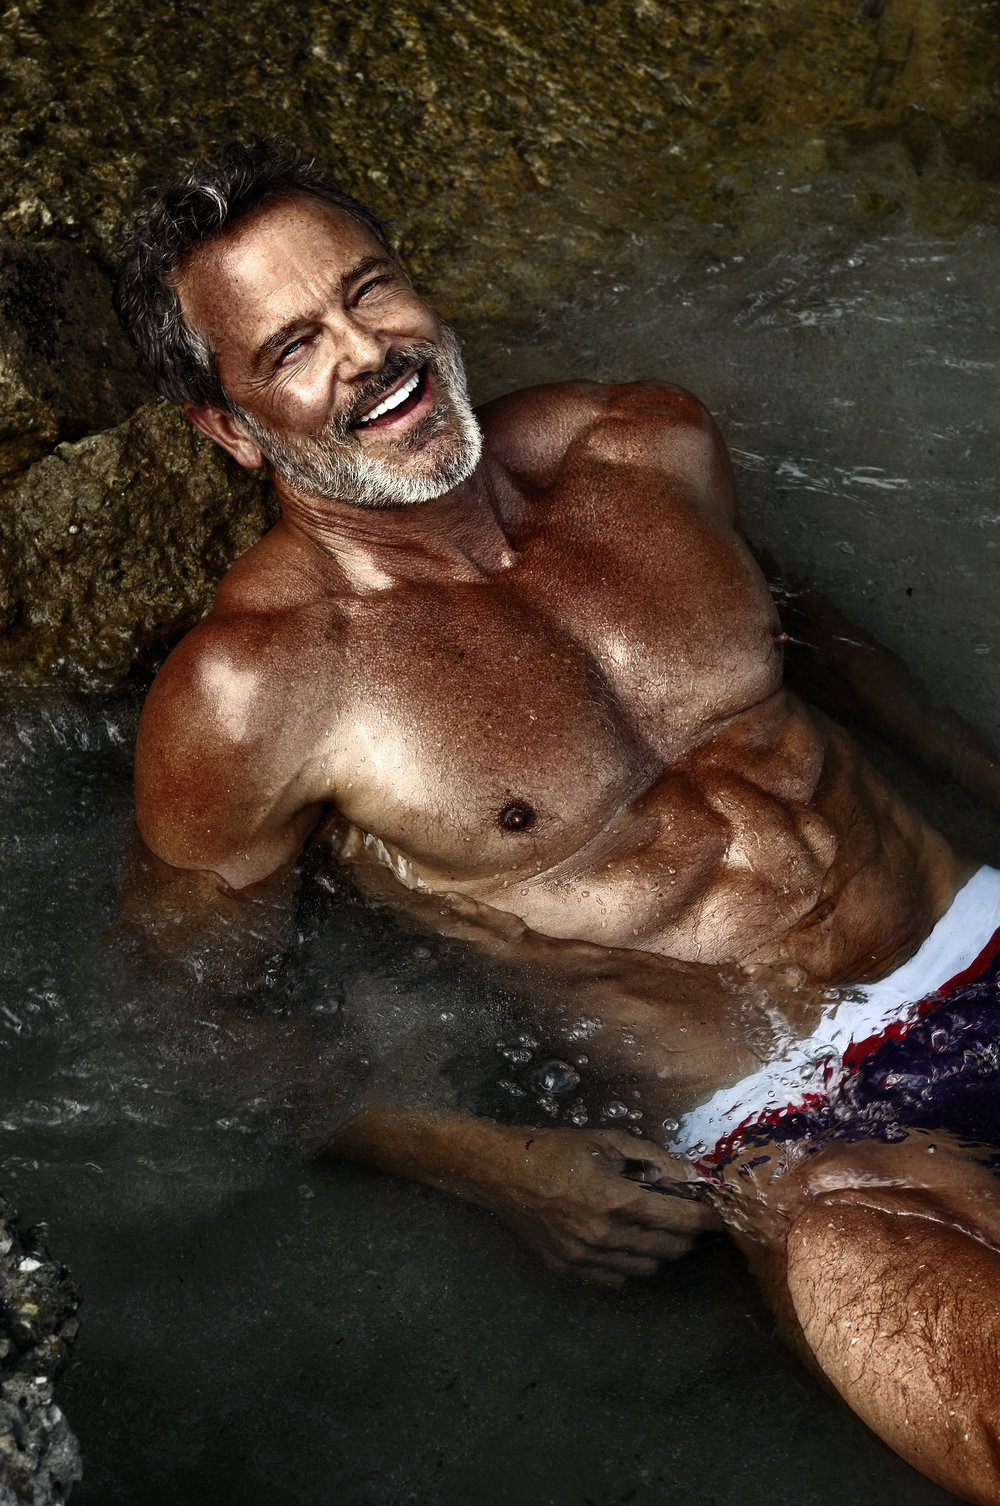 """Tom Ernsting  Profession: Model Instagram Account: @tomdeanernsting Website or social media link: https://tomernsting.com Email address: Tom.ernsting@icloud.com Florida, USA  About: I never thought I would be living my """"best life"""" after 50....let alone at 58. When I was planning my """"retirement from corporate life friends suggested following your passions! I've been lucky to incorporate my love for travel and hotels in a 2nd career in freelance event management and my fitness passion for a shared 2nd career modelling. And having the best time keeping engaged and relevant and learning.   Your Story Seven years Ago I started the first of three shoulder Surgeries. The ensuing years were dominated by chronic pain, physical therapy, and withdrawing from society due to the distraction of the pain. My body atrophied, and depression took over. It was only after I quit my job and left NYC (after 15 years) for Naples to start my """"second careers"""" did my world return and life exploded (in a perfect way)   Photo Credits: Scott Tatlier  Ron Reagan  Anna Zee"""